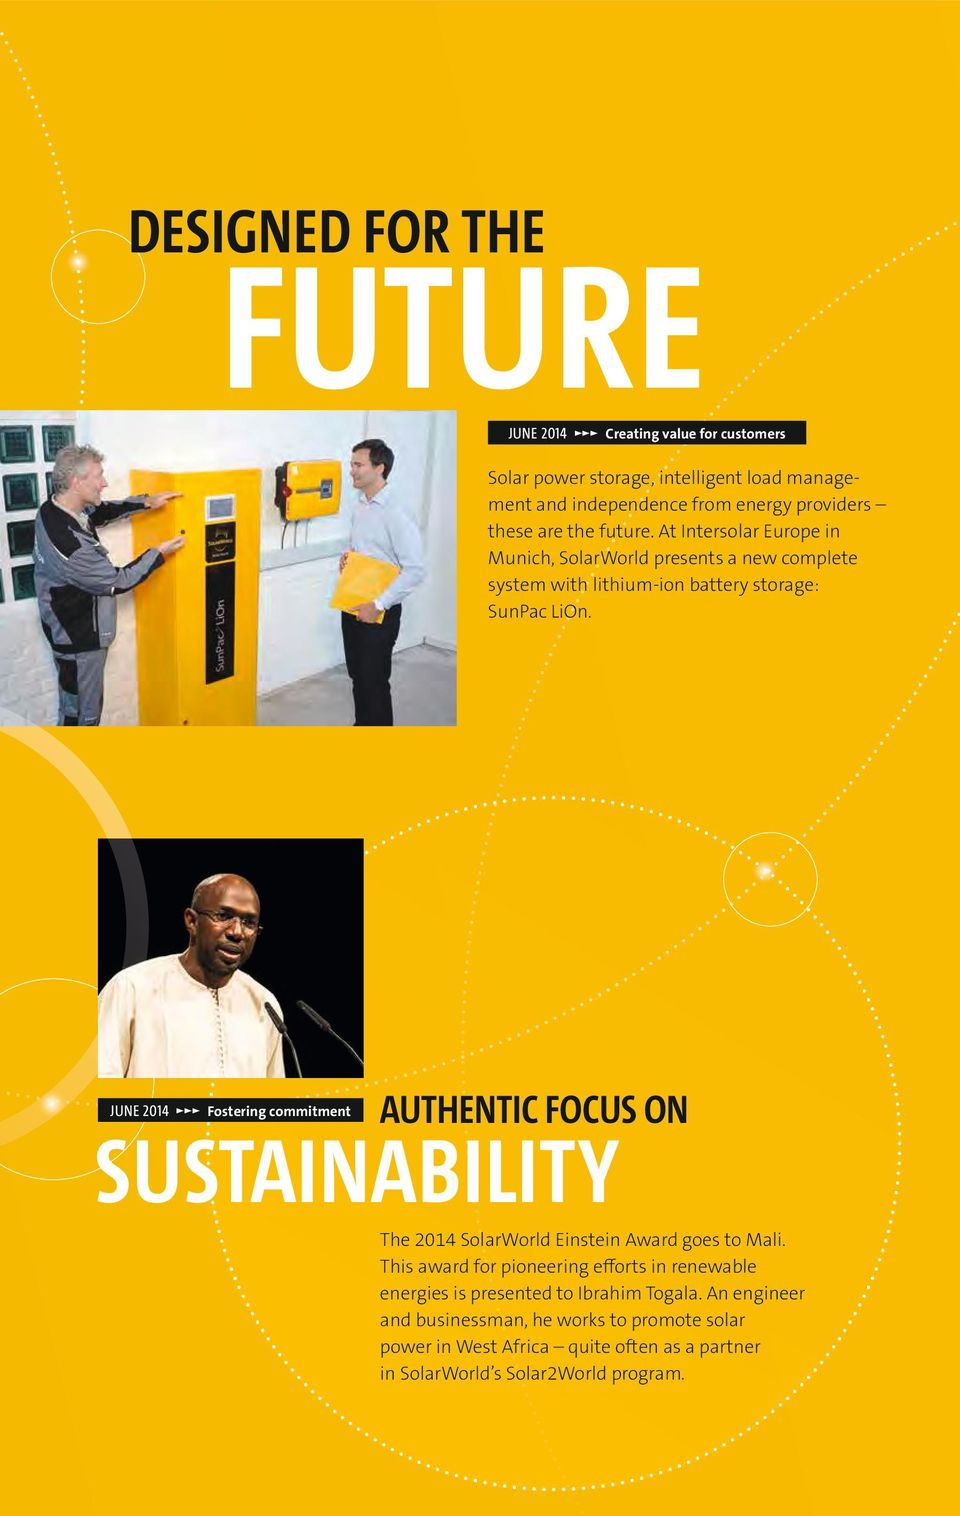 JUNE 214 Fostering commitment AUTHENTIC FOCUS ON SUSTAINABILITY The 214 SolarWorld Einstein Award goes to Mali.